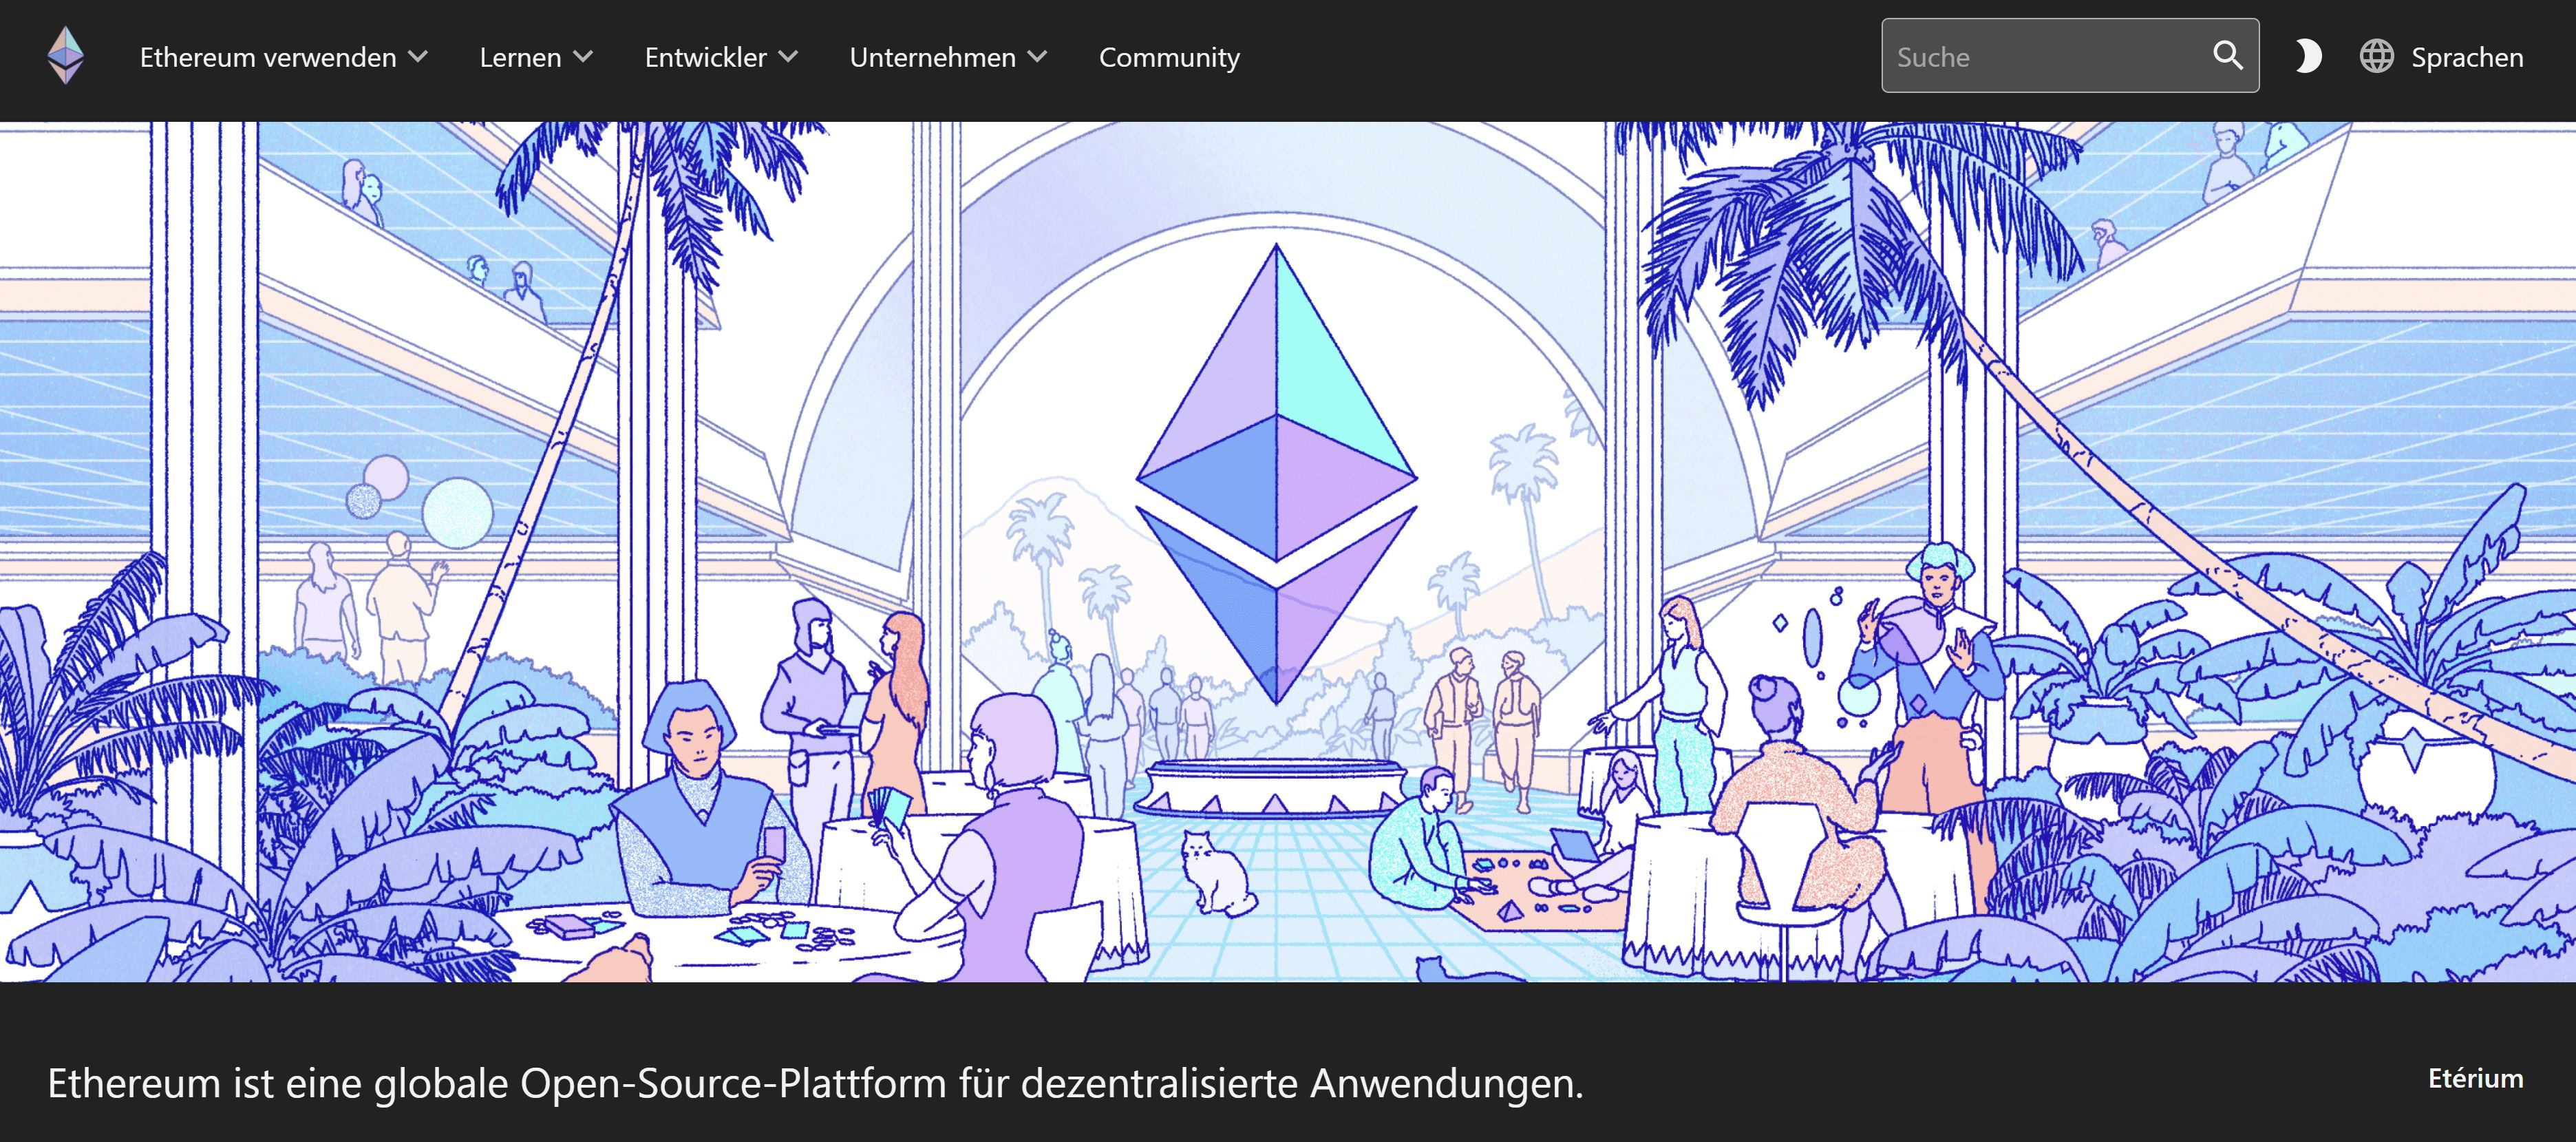 Ethereums webbplats